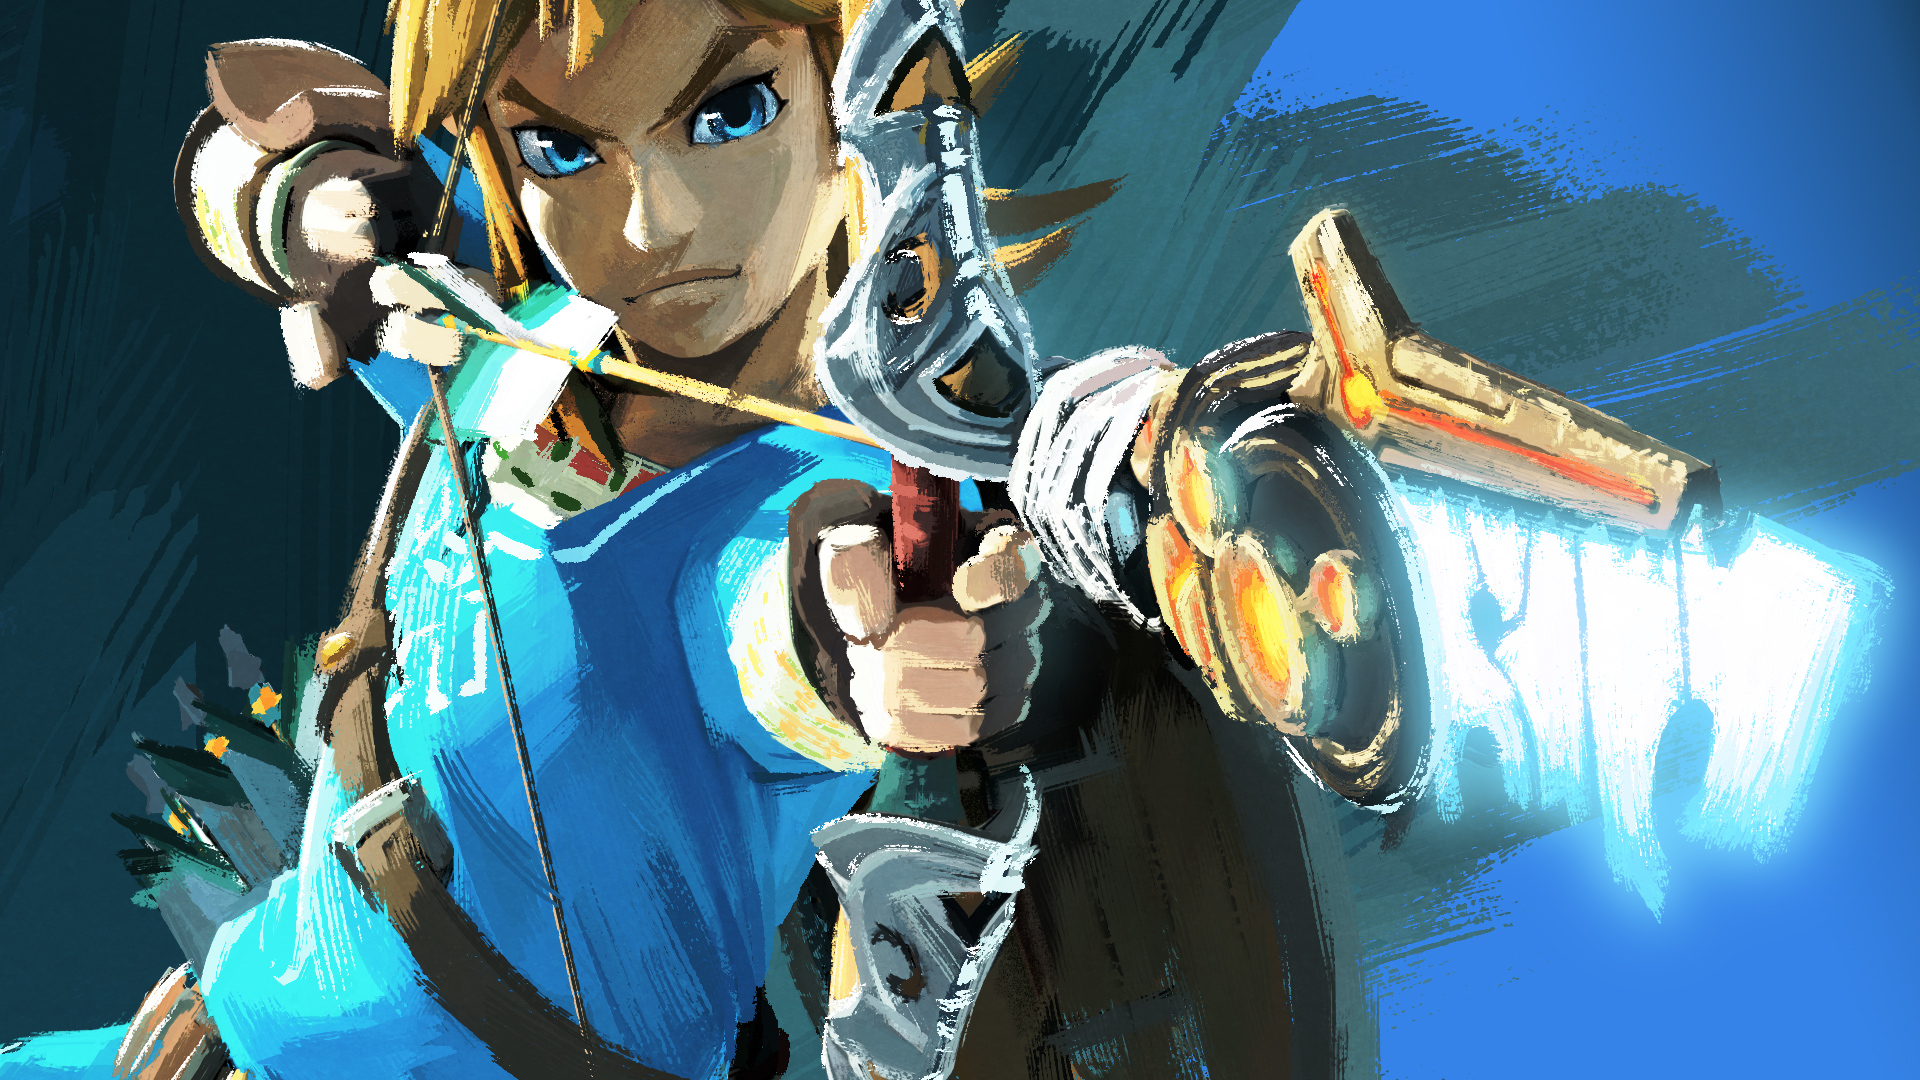 GameTube Let's Play The Legend of Zelda: Breath of the Wild